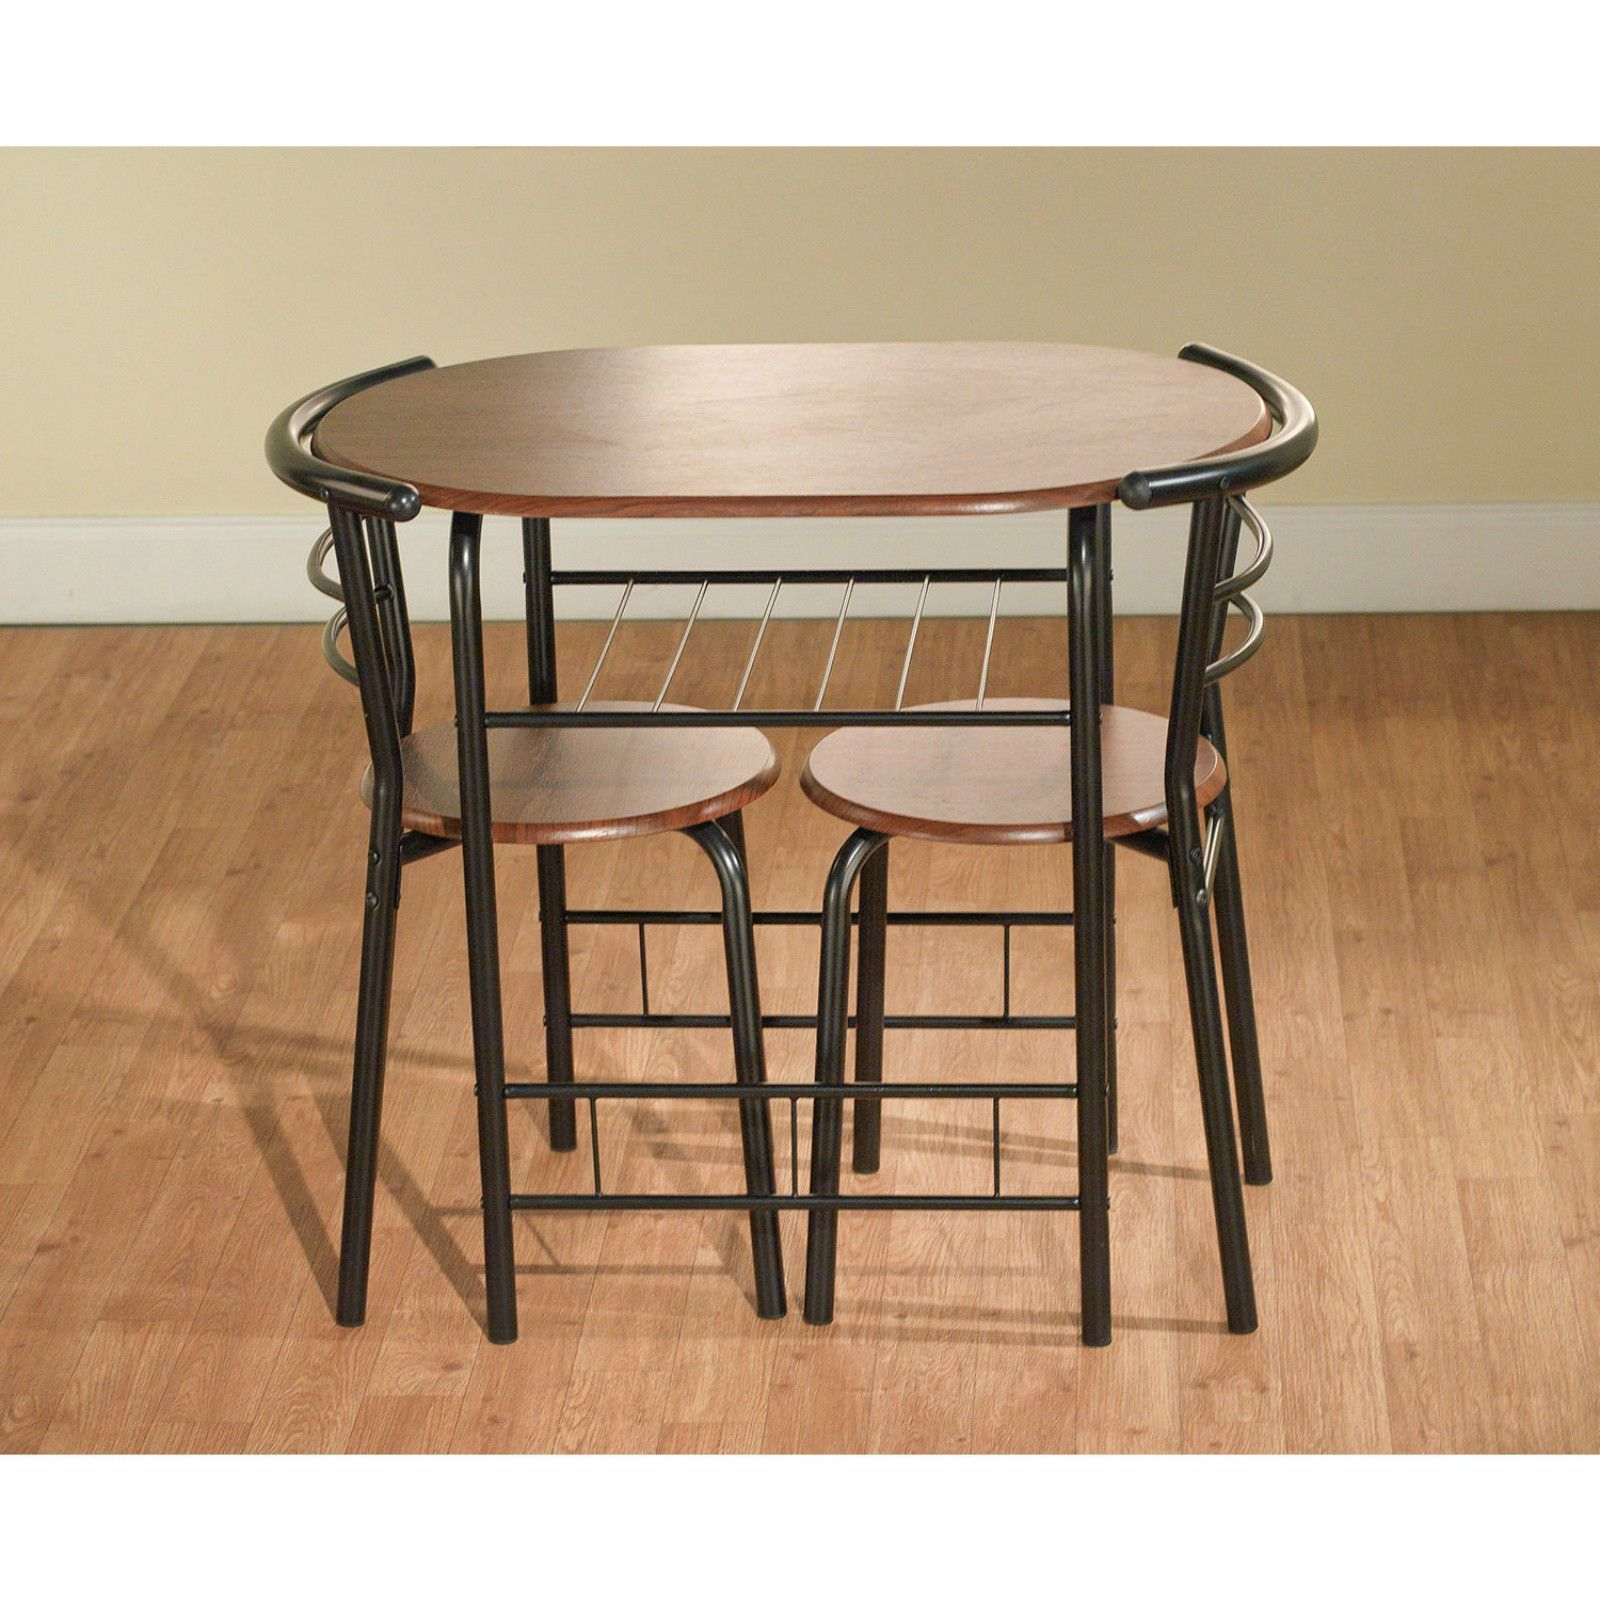 Dining Table Set For 2 Bistro Kitchen Table Settings Bistro Set Indoor Dining Room Sets